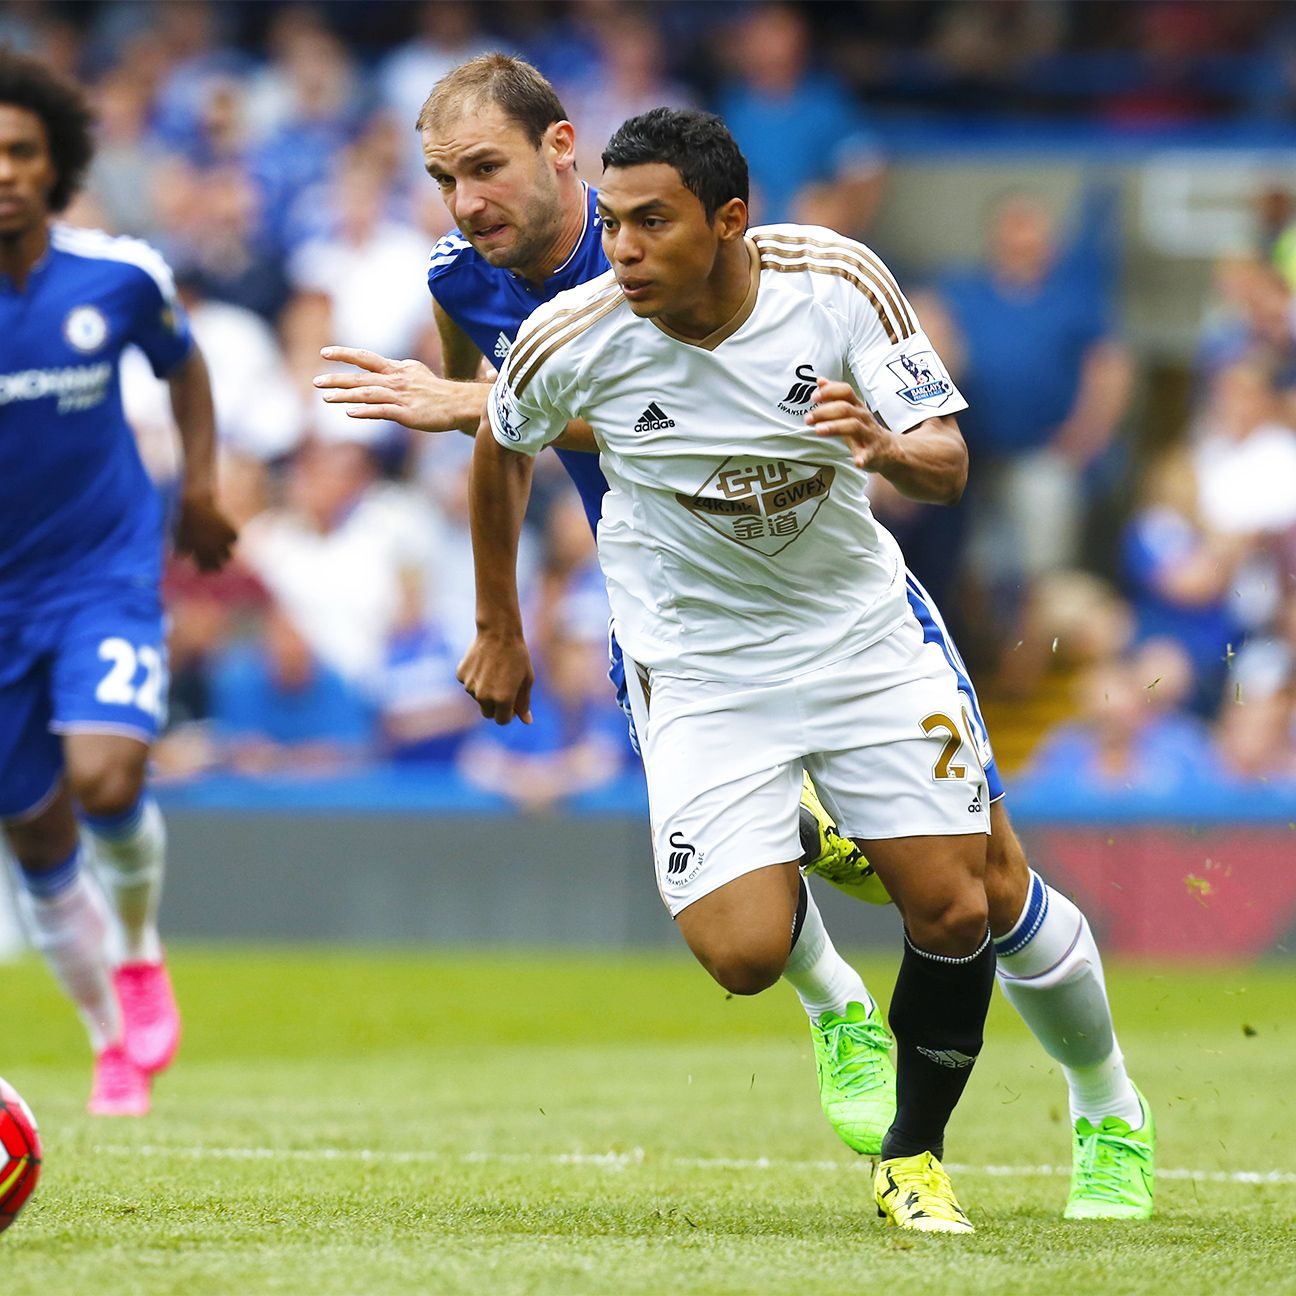 Chelsea's Branislav Ivanovic had no answer for speedy Swansea winger Jefferson Montero on Saturday.